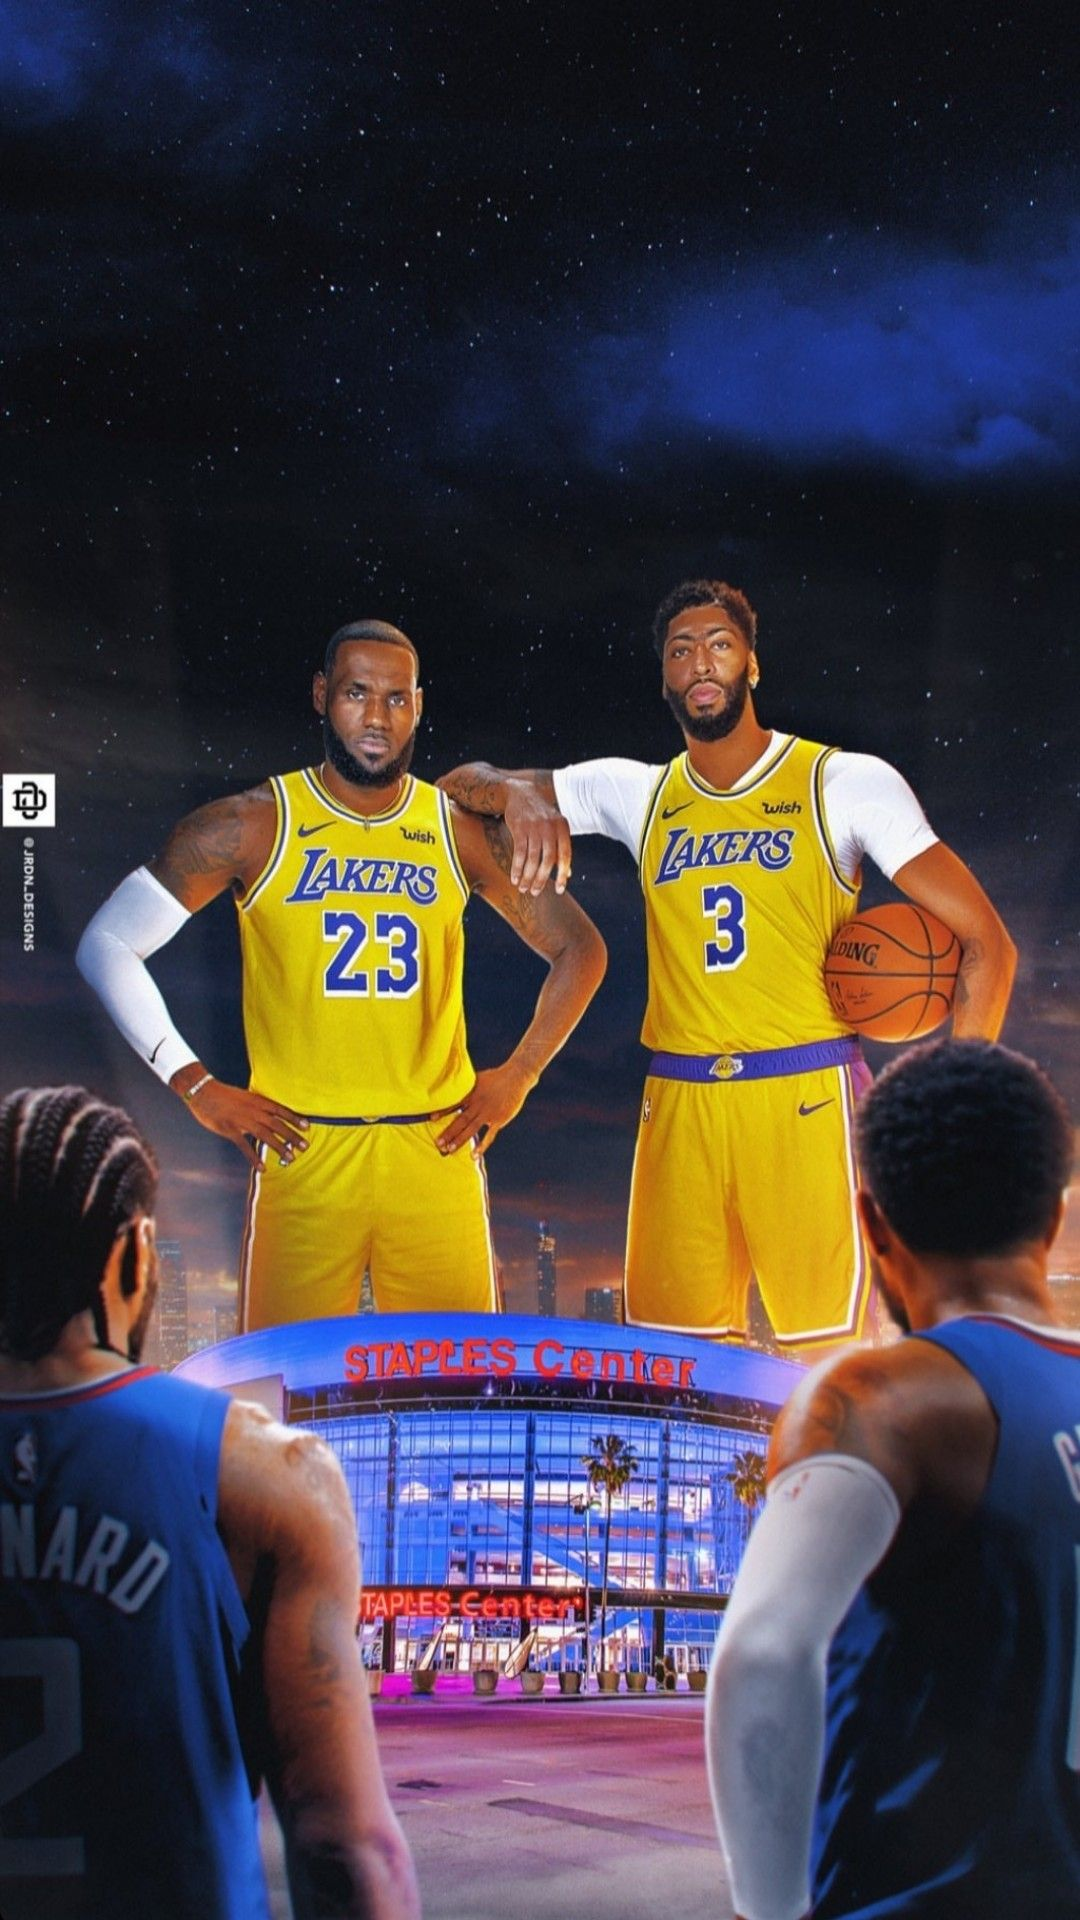 Lebron James And Anthony Davis Wallpaper Lakers Vs Clippers Lebron James Lakers Wallpaper Lakers